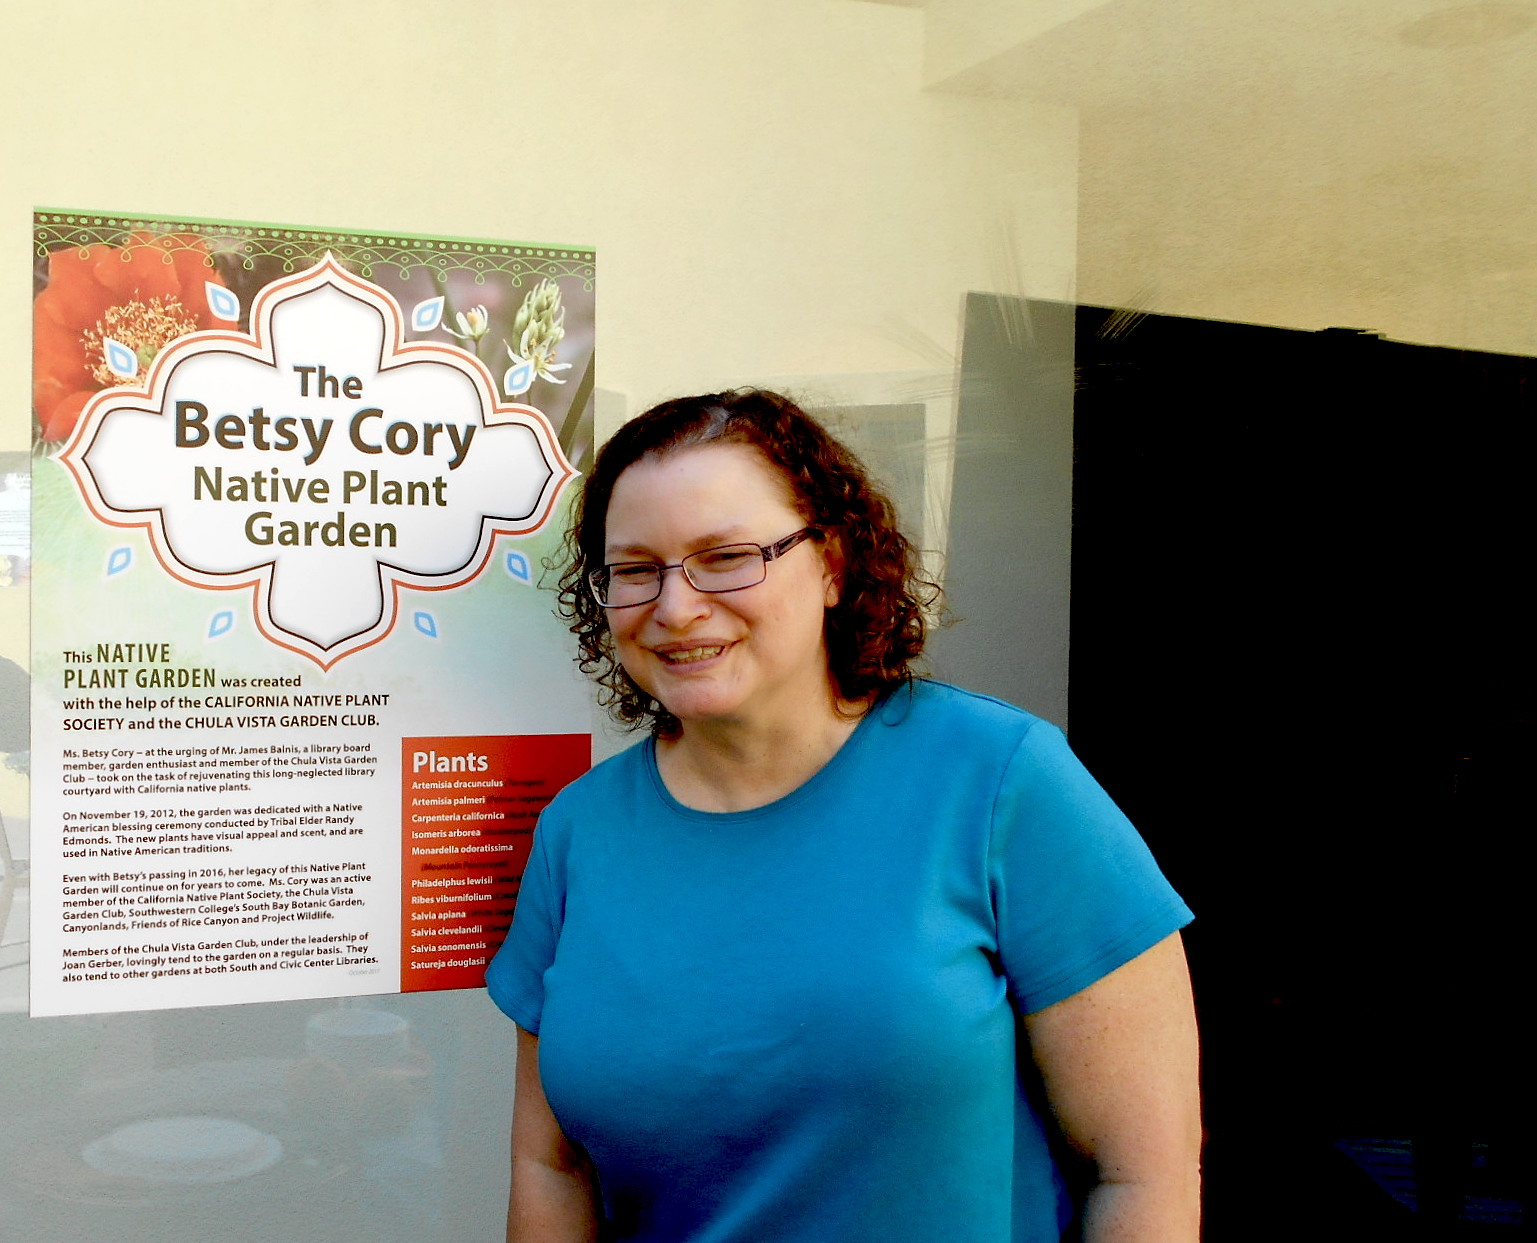 Robin, one of Betsy Cory's daughters, next to the Garden's sign.